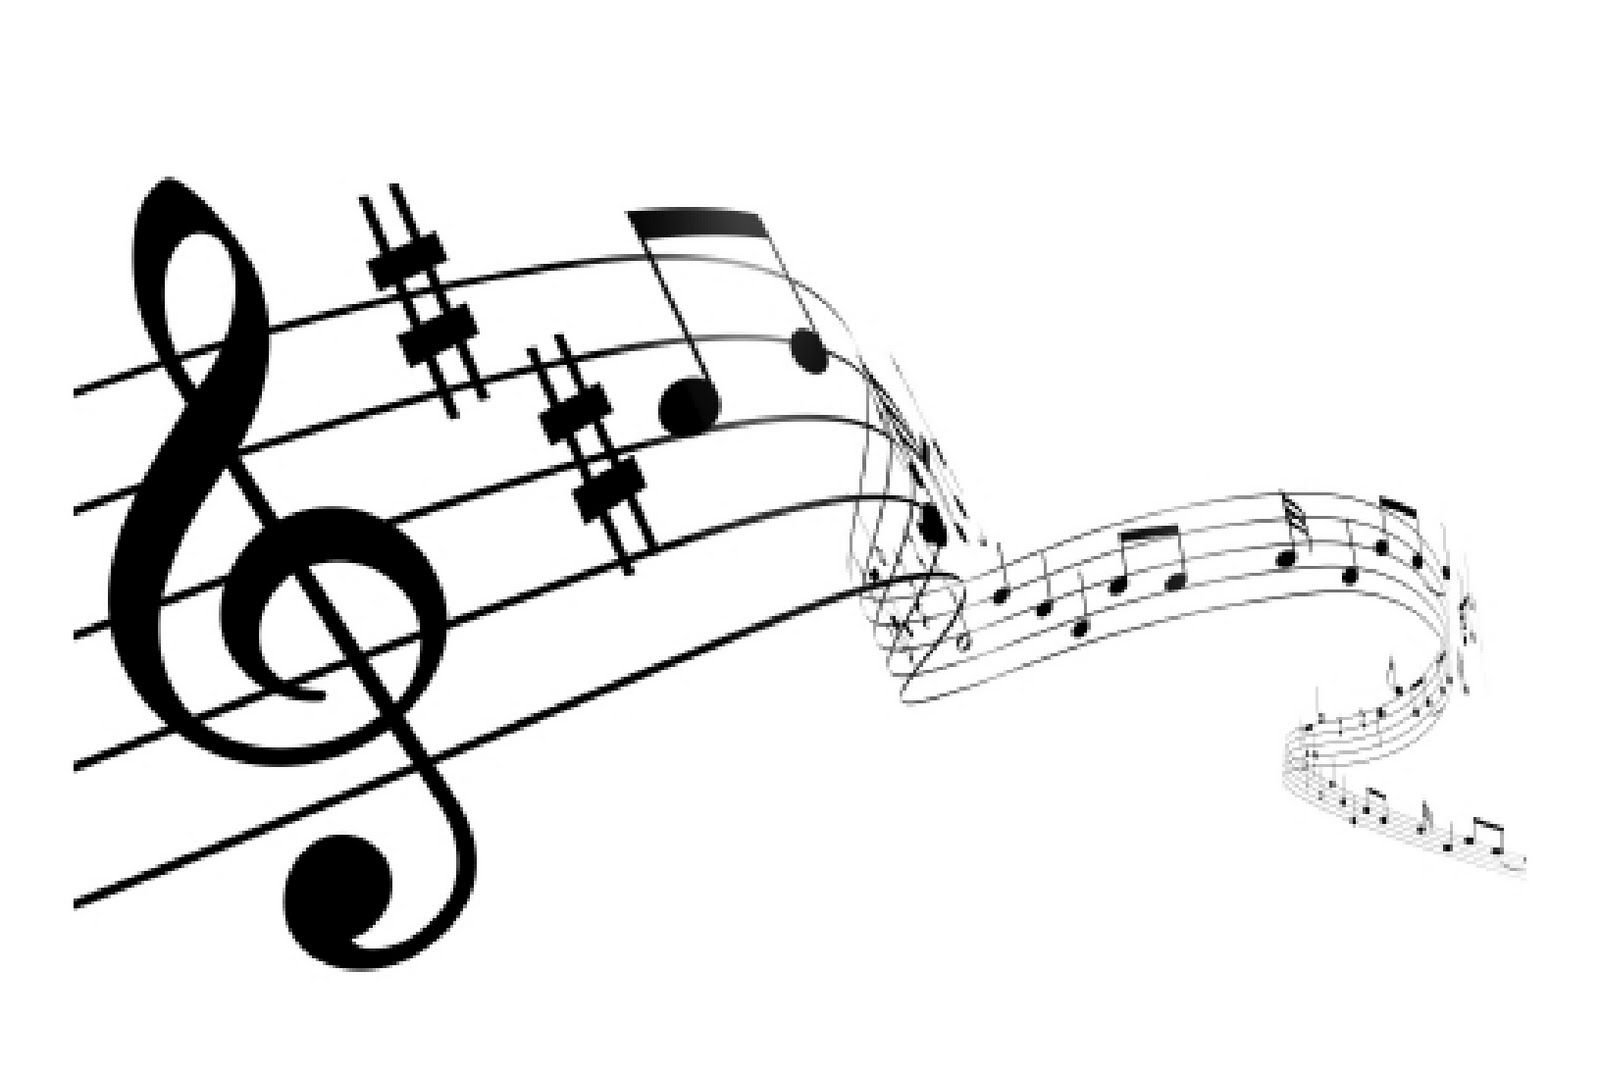 Music notes resemble the symbols and marks of music. In